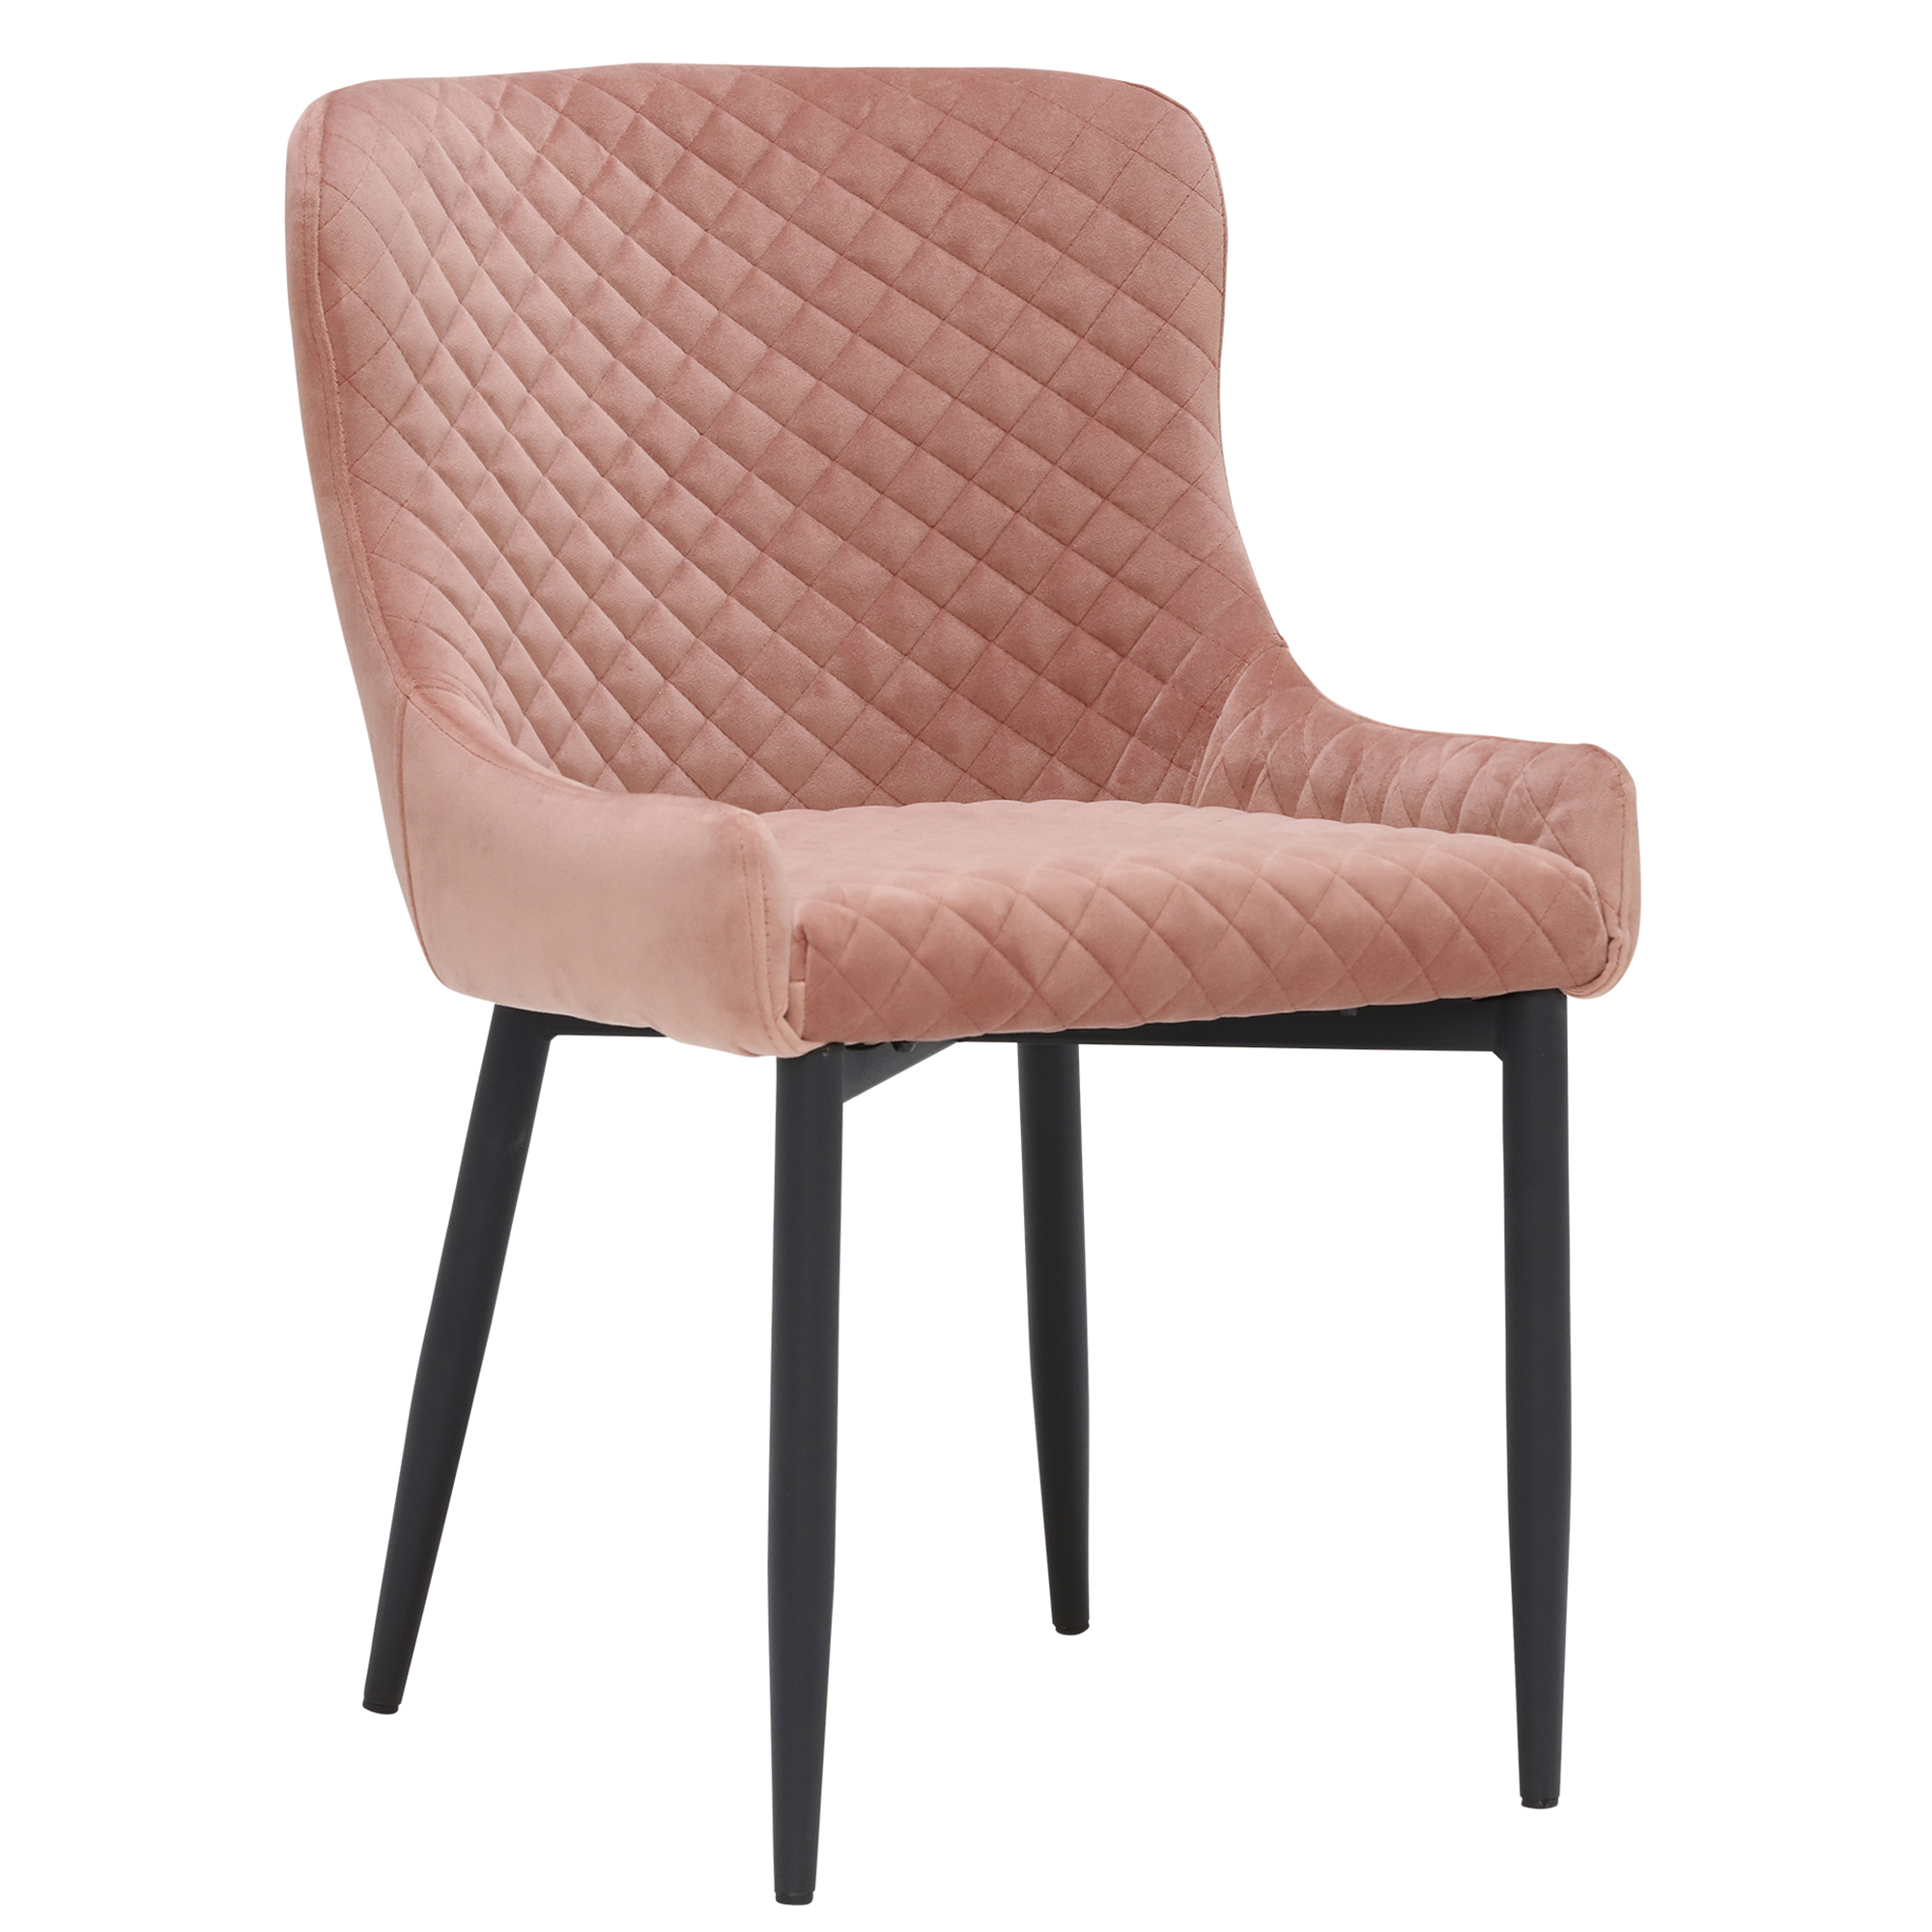 Puree FABRIC DINING ARMCHAIR Comfy